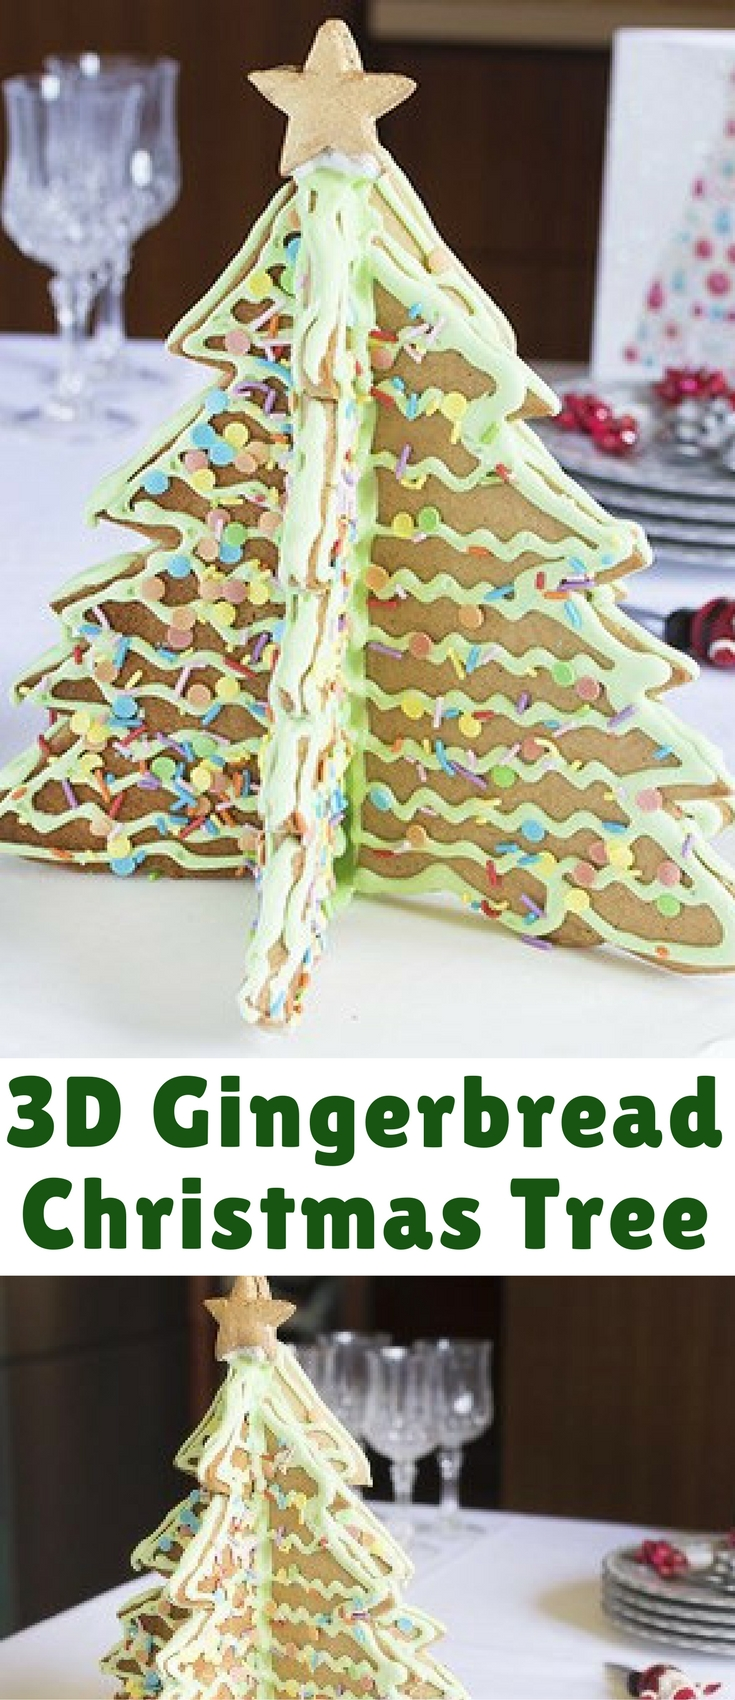 Make this showstopping Gingerbread Christmas Tree as a centrepiece for your festive table.